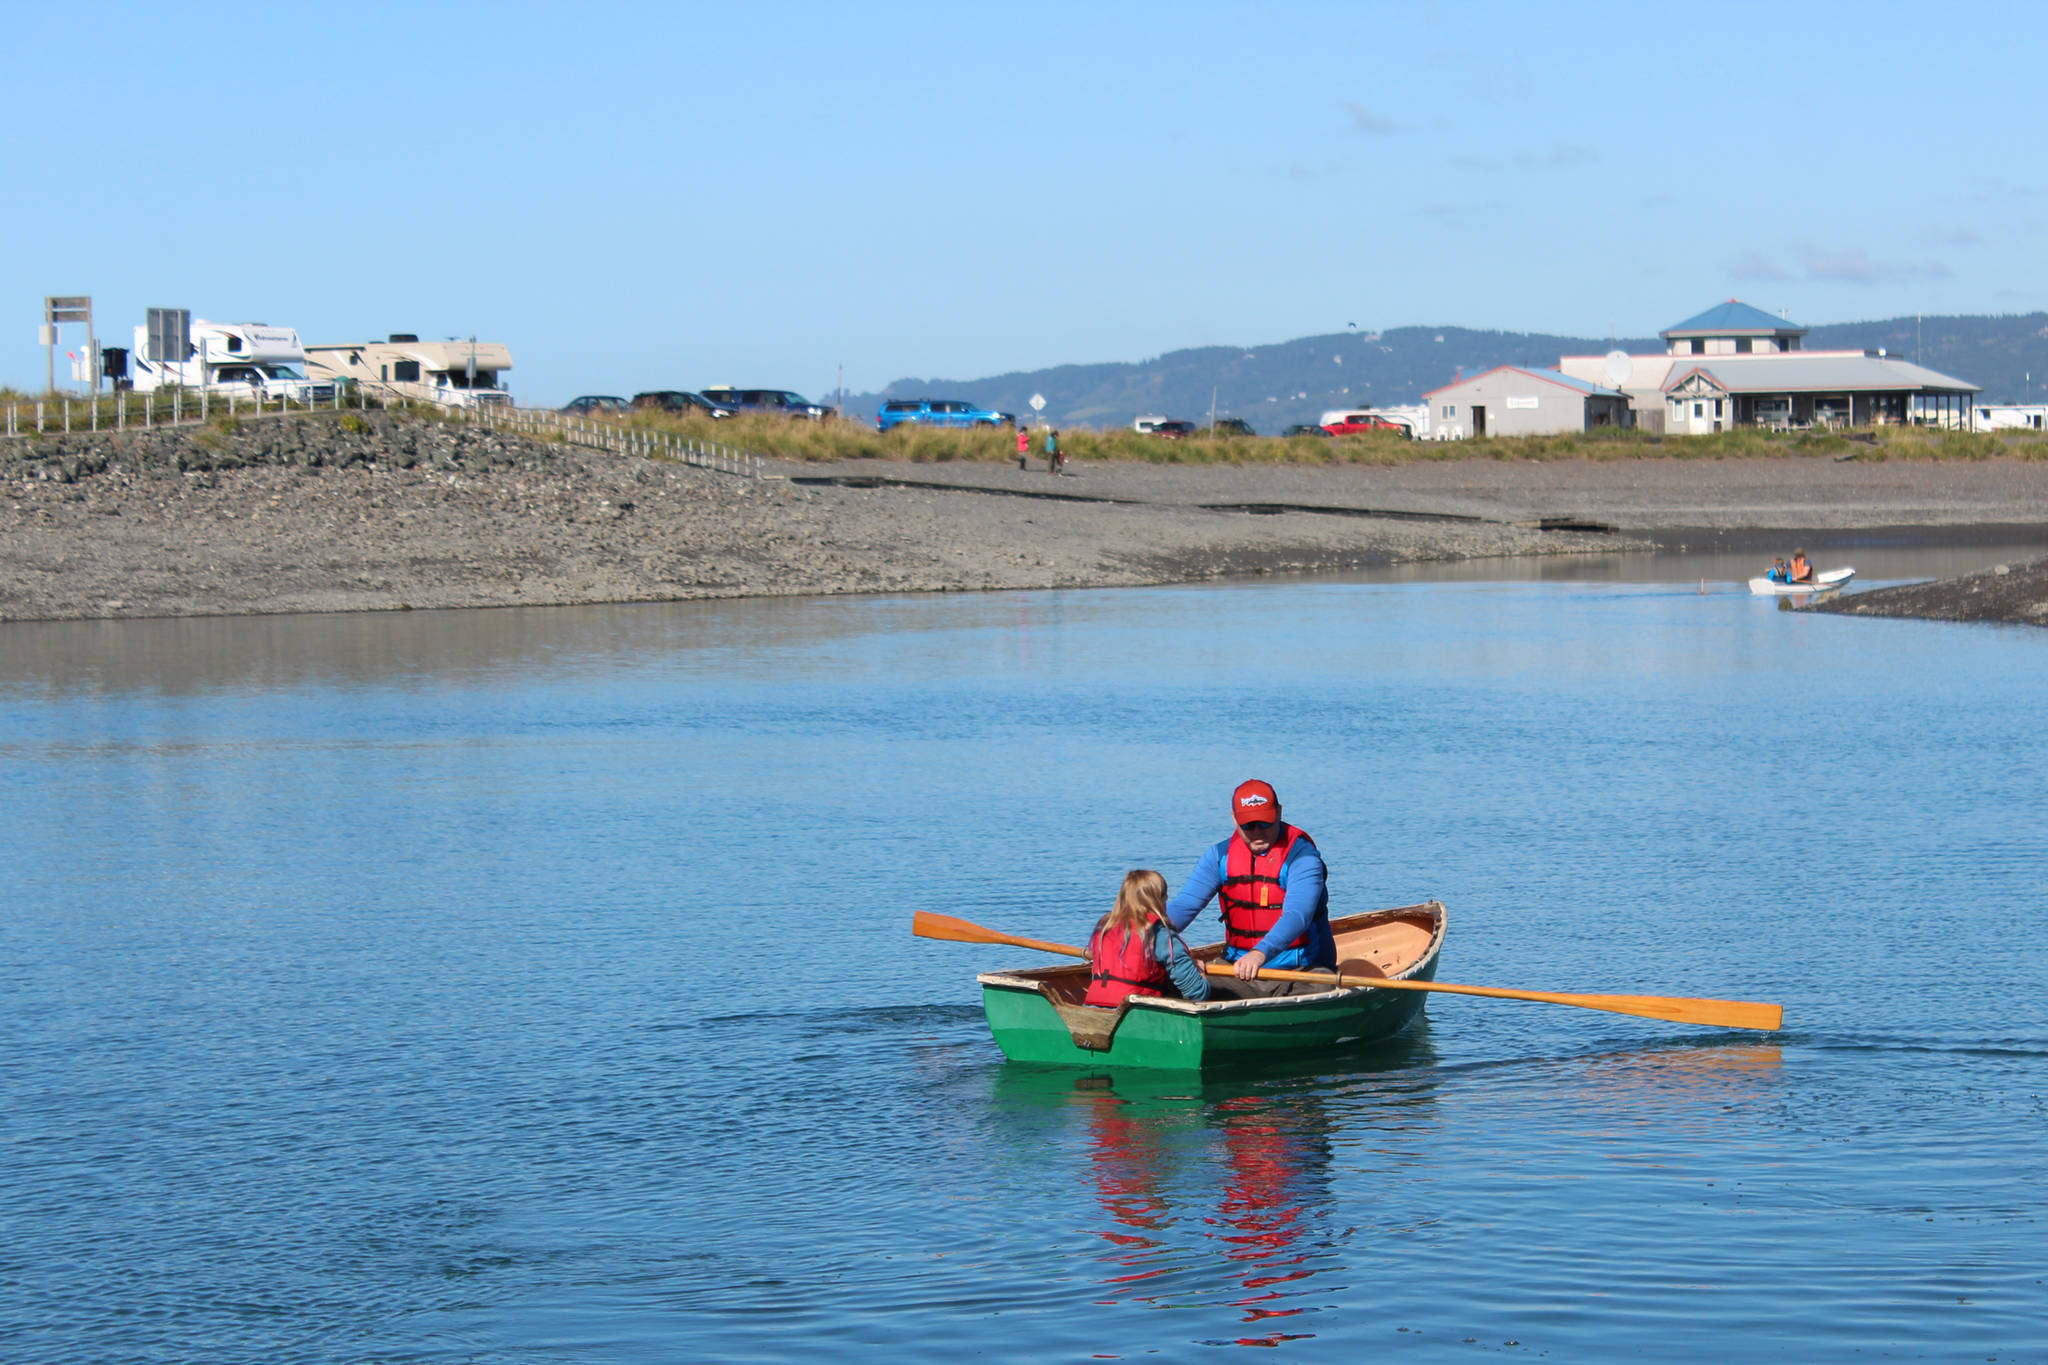 A man rows a young girl around the Nick Dudiak Fishing Lagoon in a wooden boat Saturday, Sept. 1, 2018 during the Kachemak Bay Wooden Boat Festival on the Homer Spit in Homer, Alaska. (Photo by Megan Pacer/Homer News)